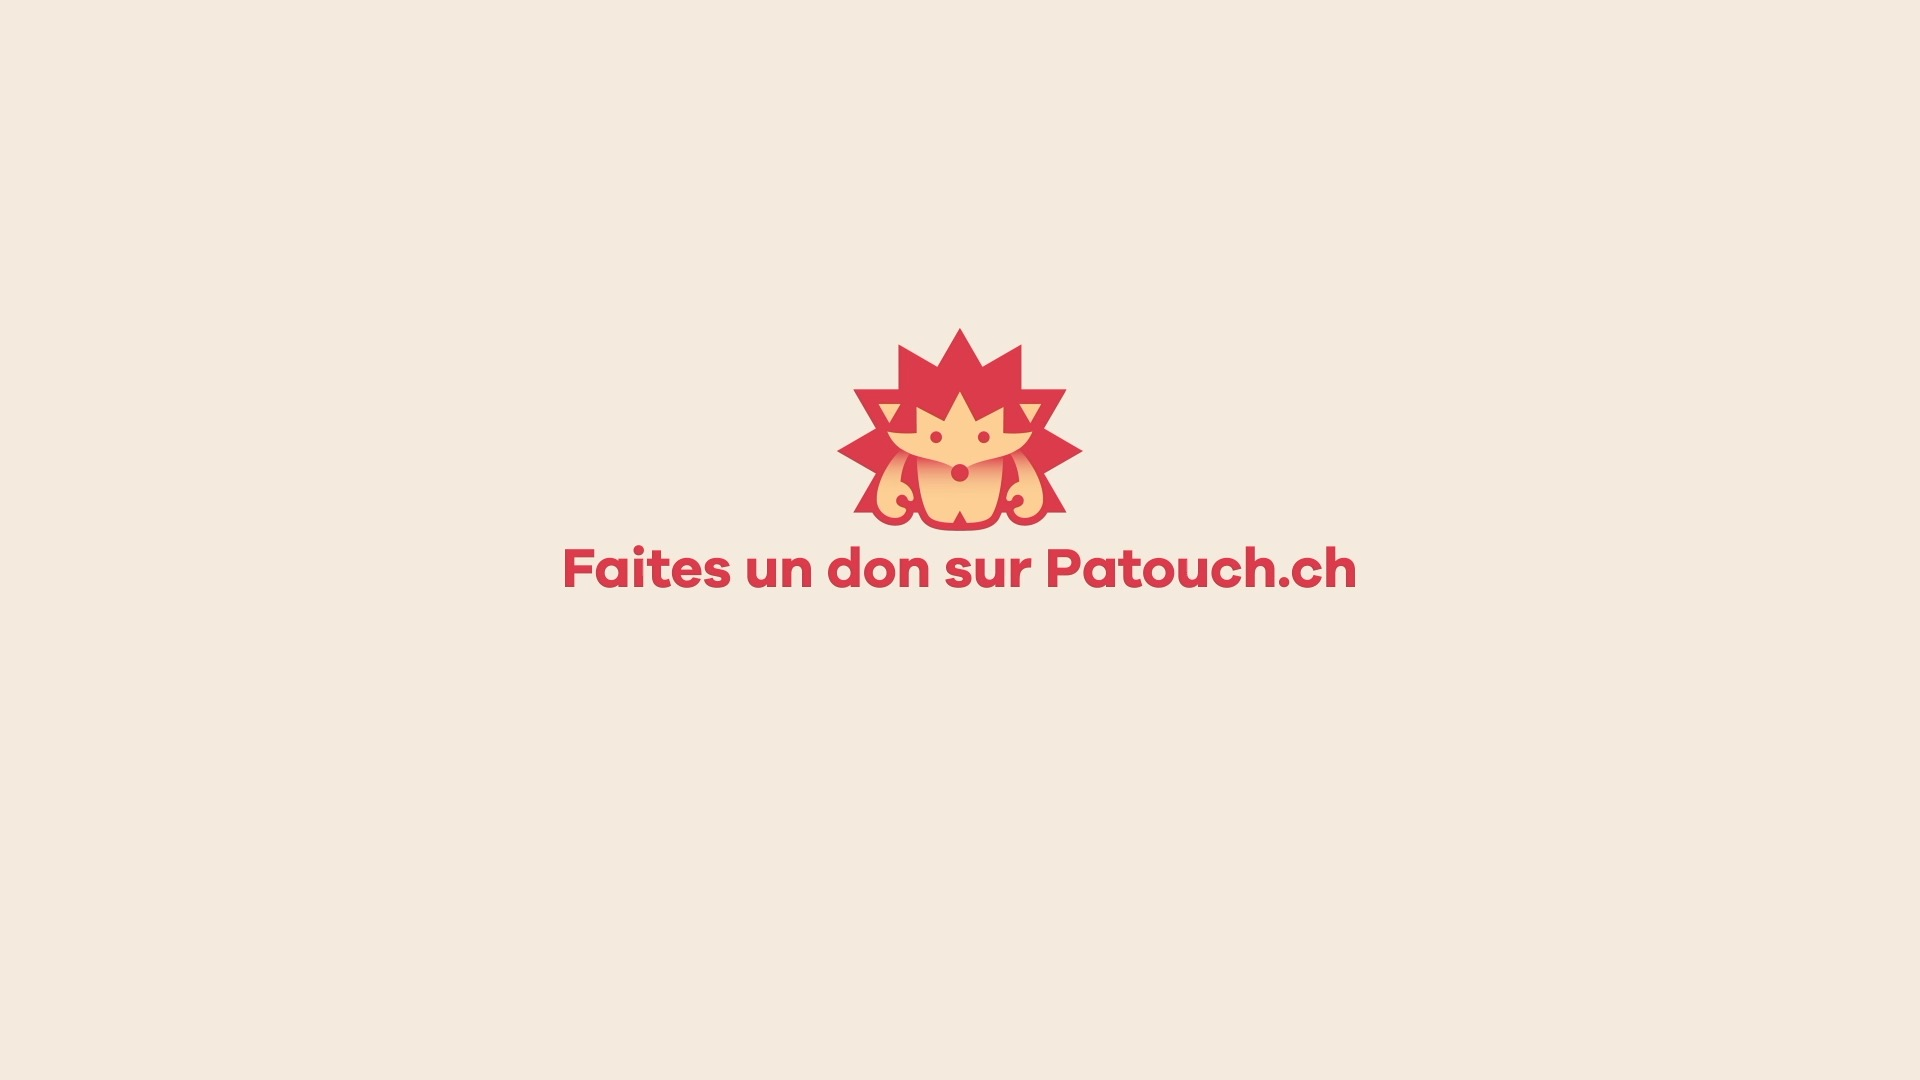 Patouch_Une